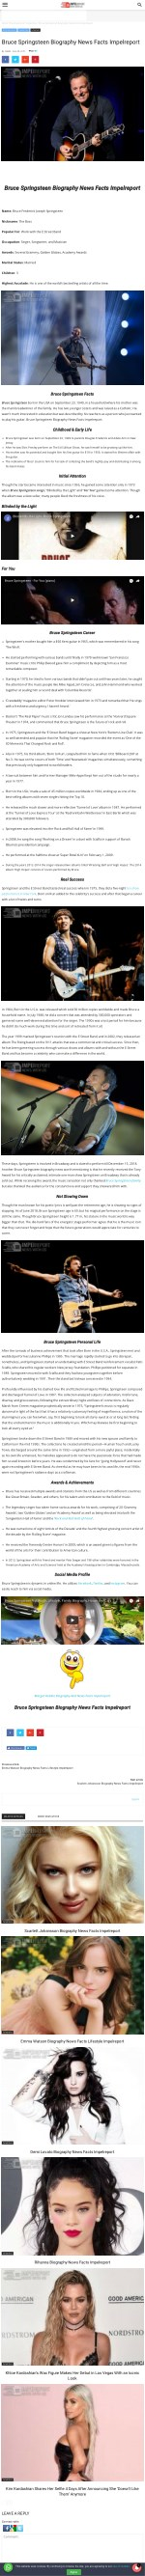 Bruce Springsteen Biography News Facts Impelreport